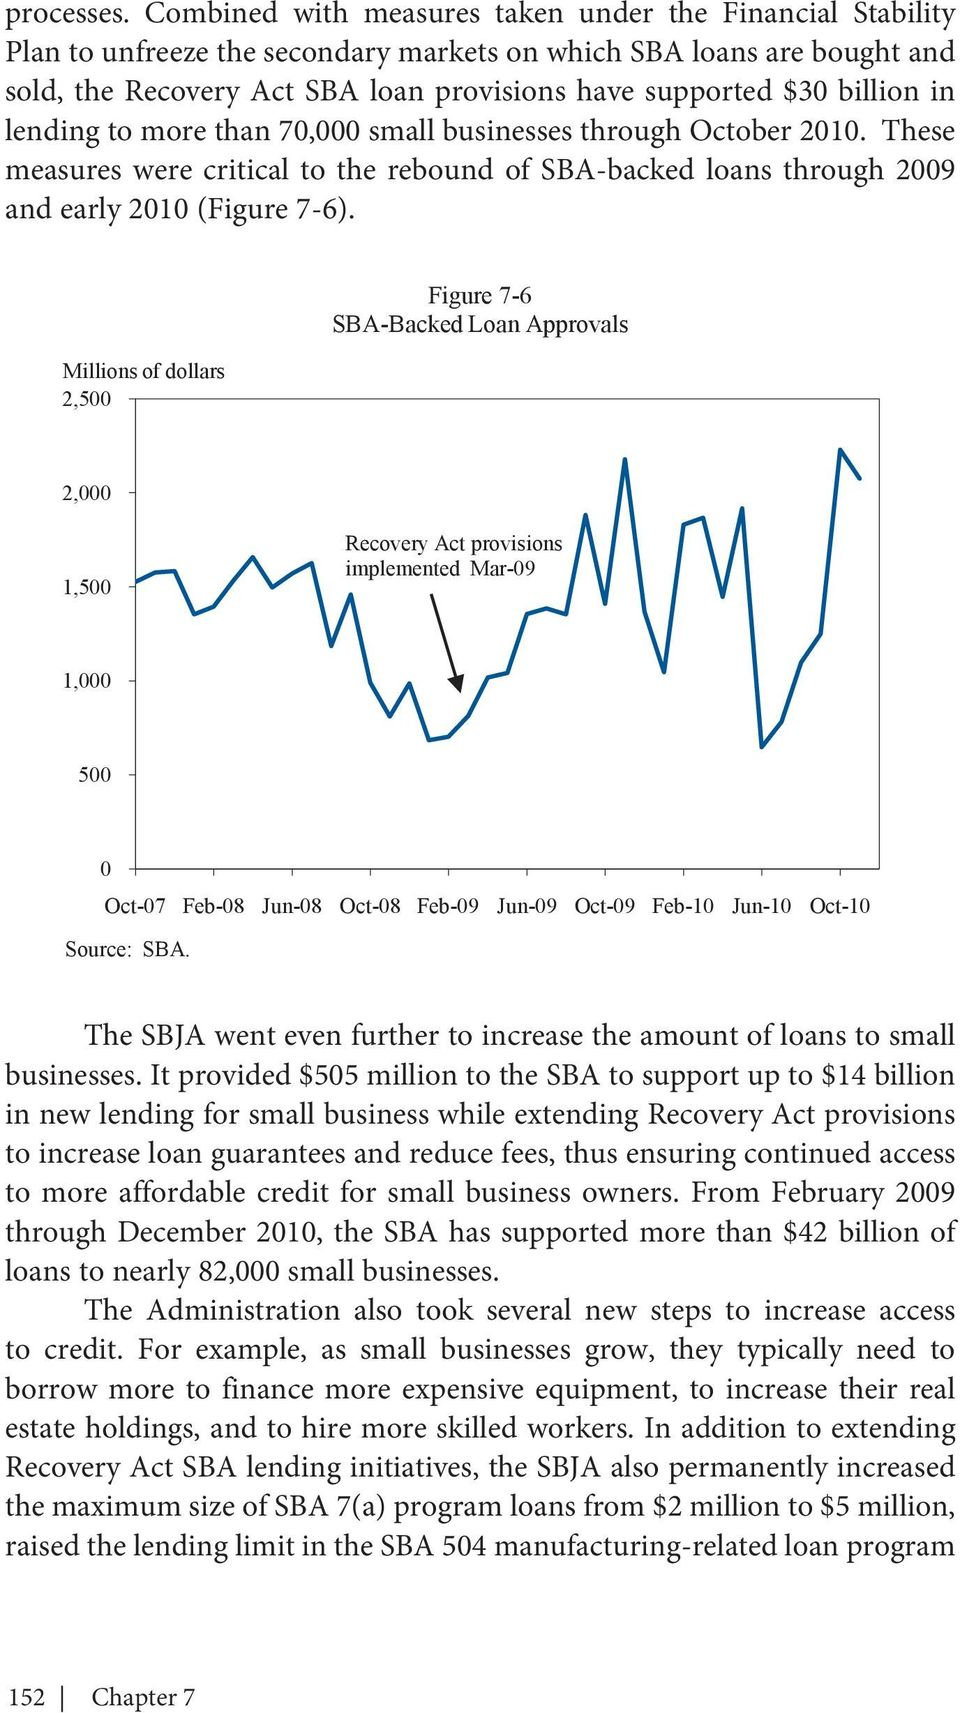 billion in lending to more than 70,000 small businesses through October 2010. These measures were critical to the rebound of SBA-backed loans through 2009 and early 2010 (Figure 7-6).